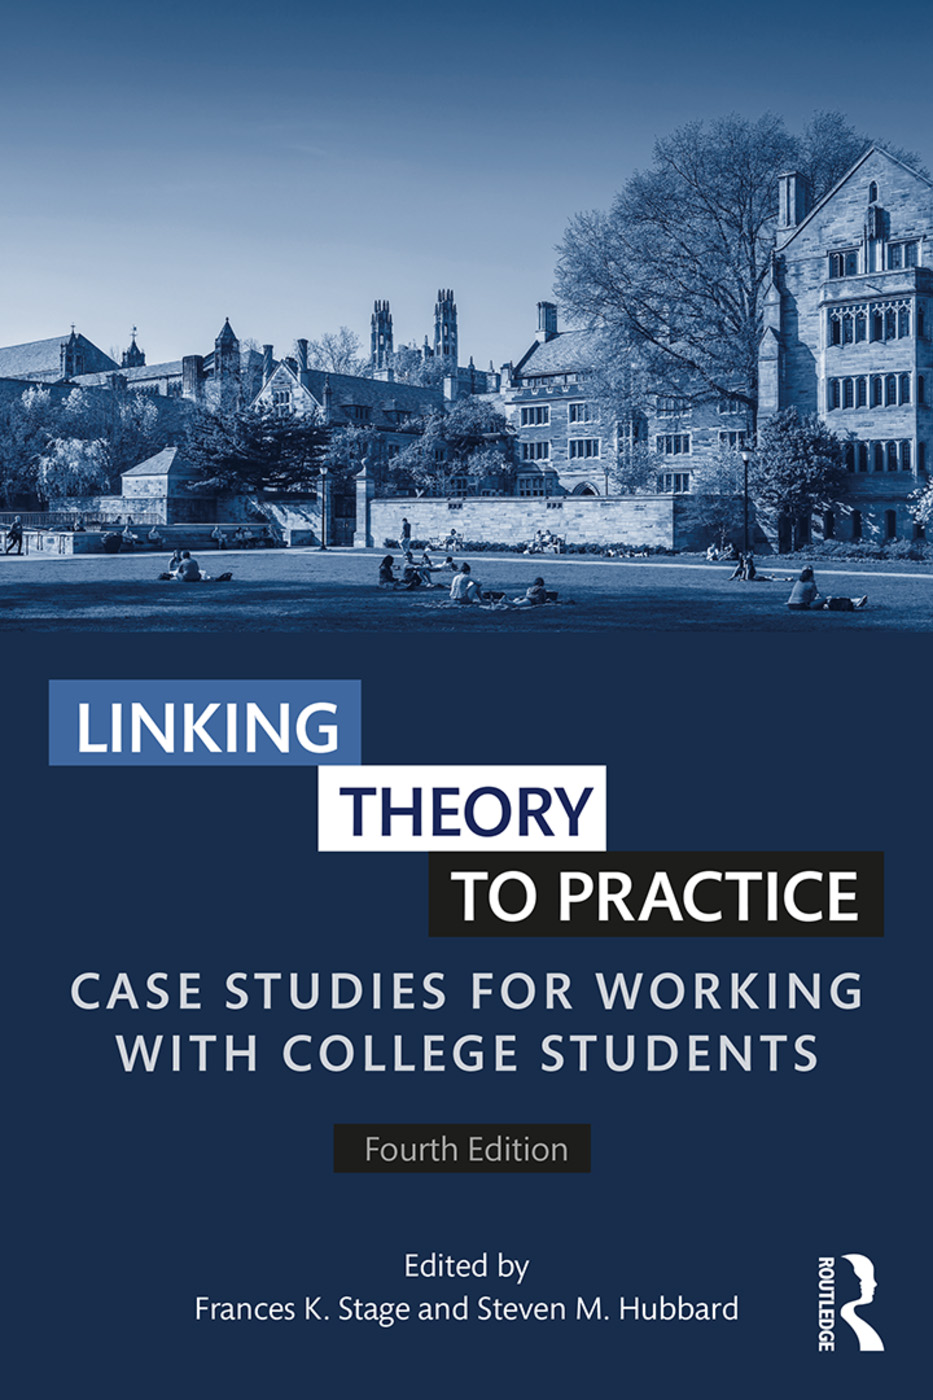 Linking theory to practice: Case studies for working with college students - Hubbard, S.M., & Stage, F.K. (2017). Linking theory to practice: Case studies for working with college students (4th Ed.). New York: RoutledgeCases in Admissions